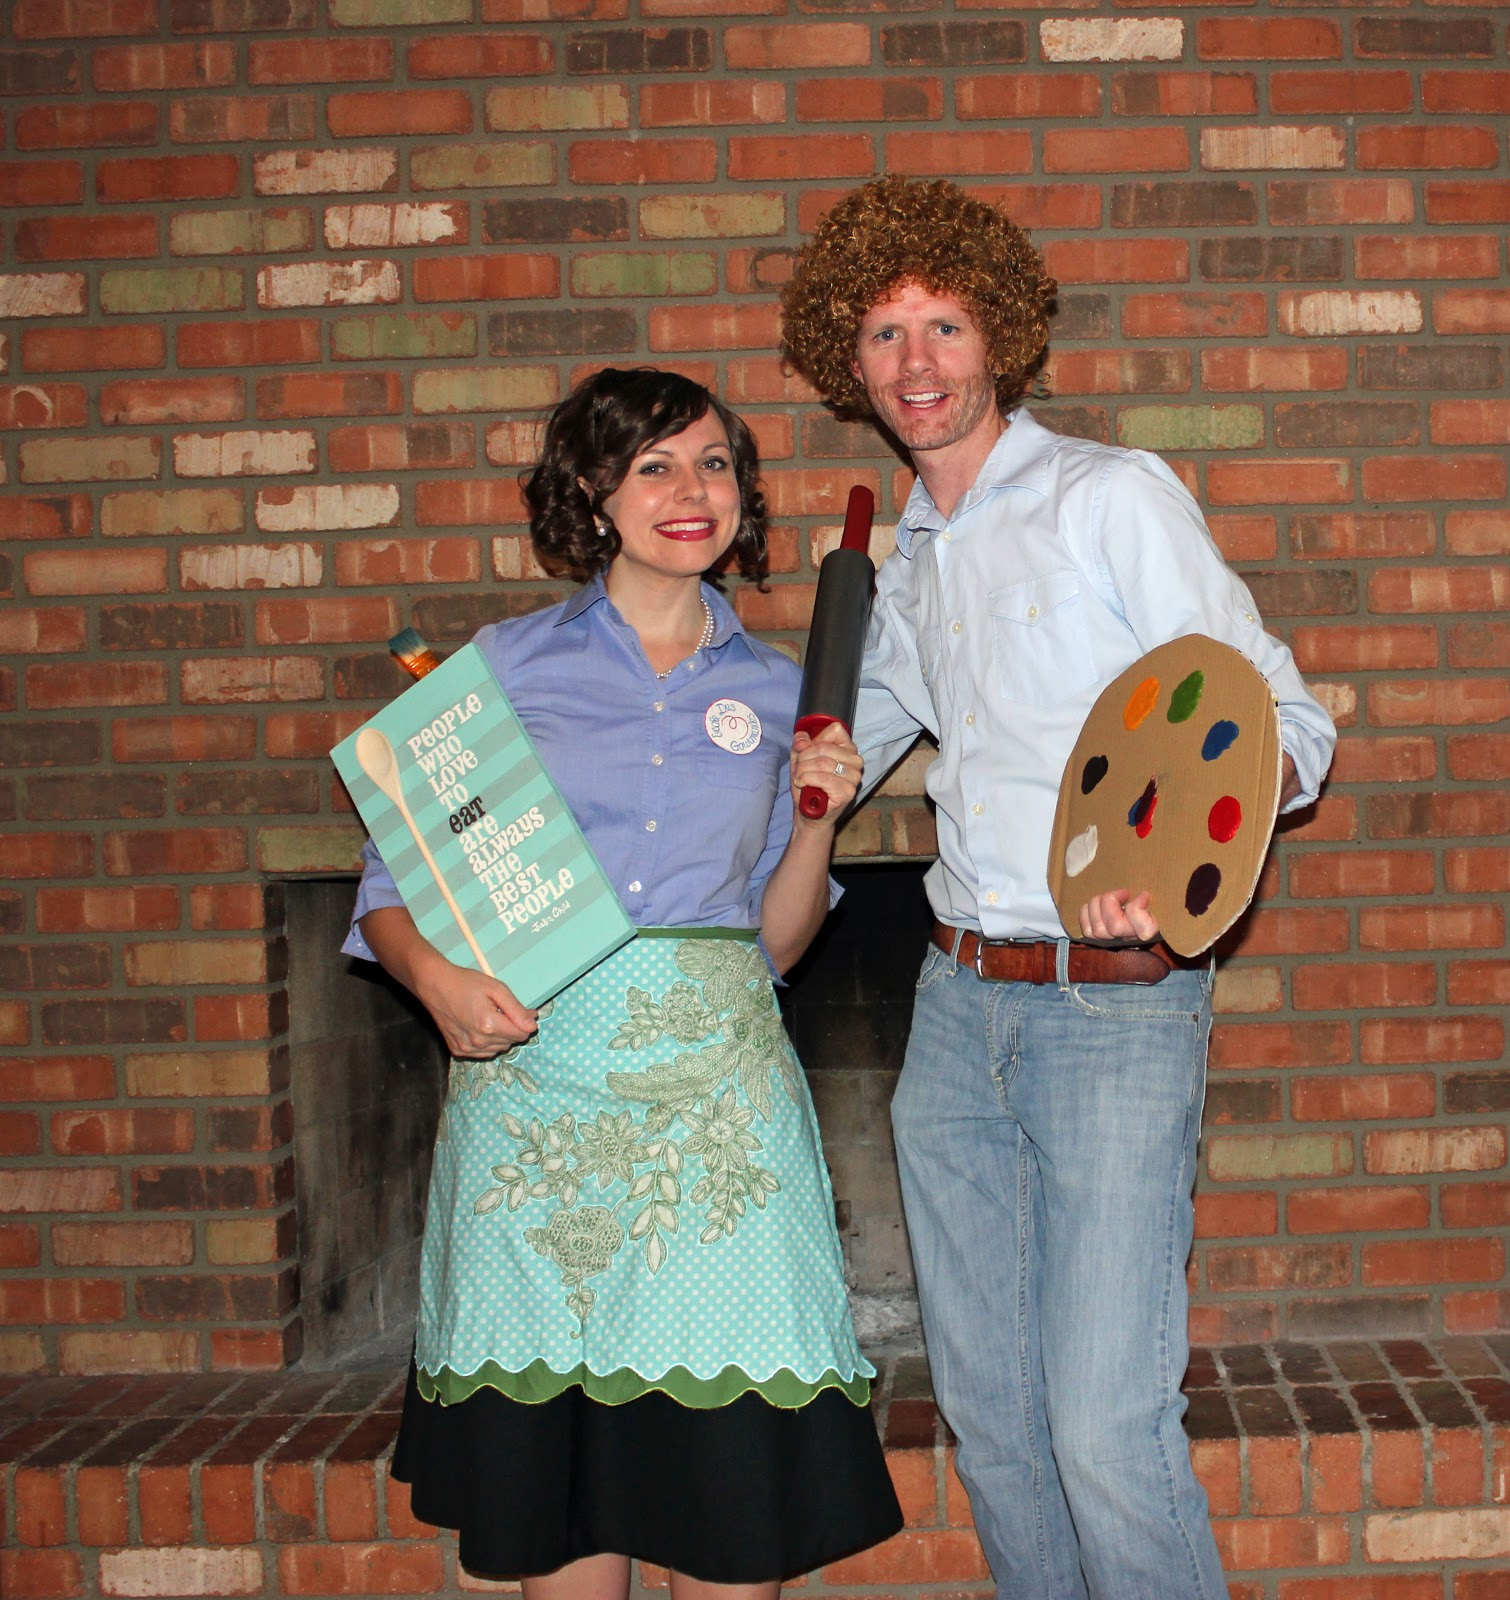 julia child and bob ross public media halloween costumes